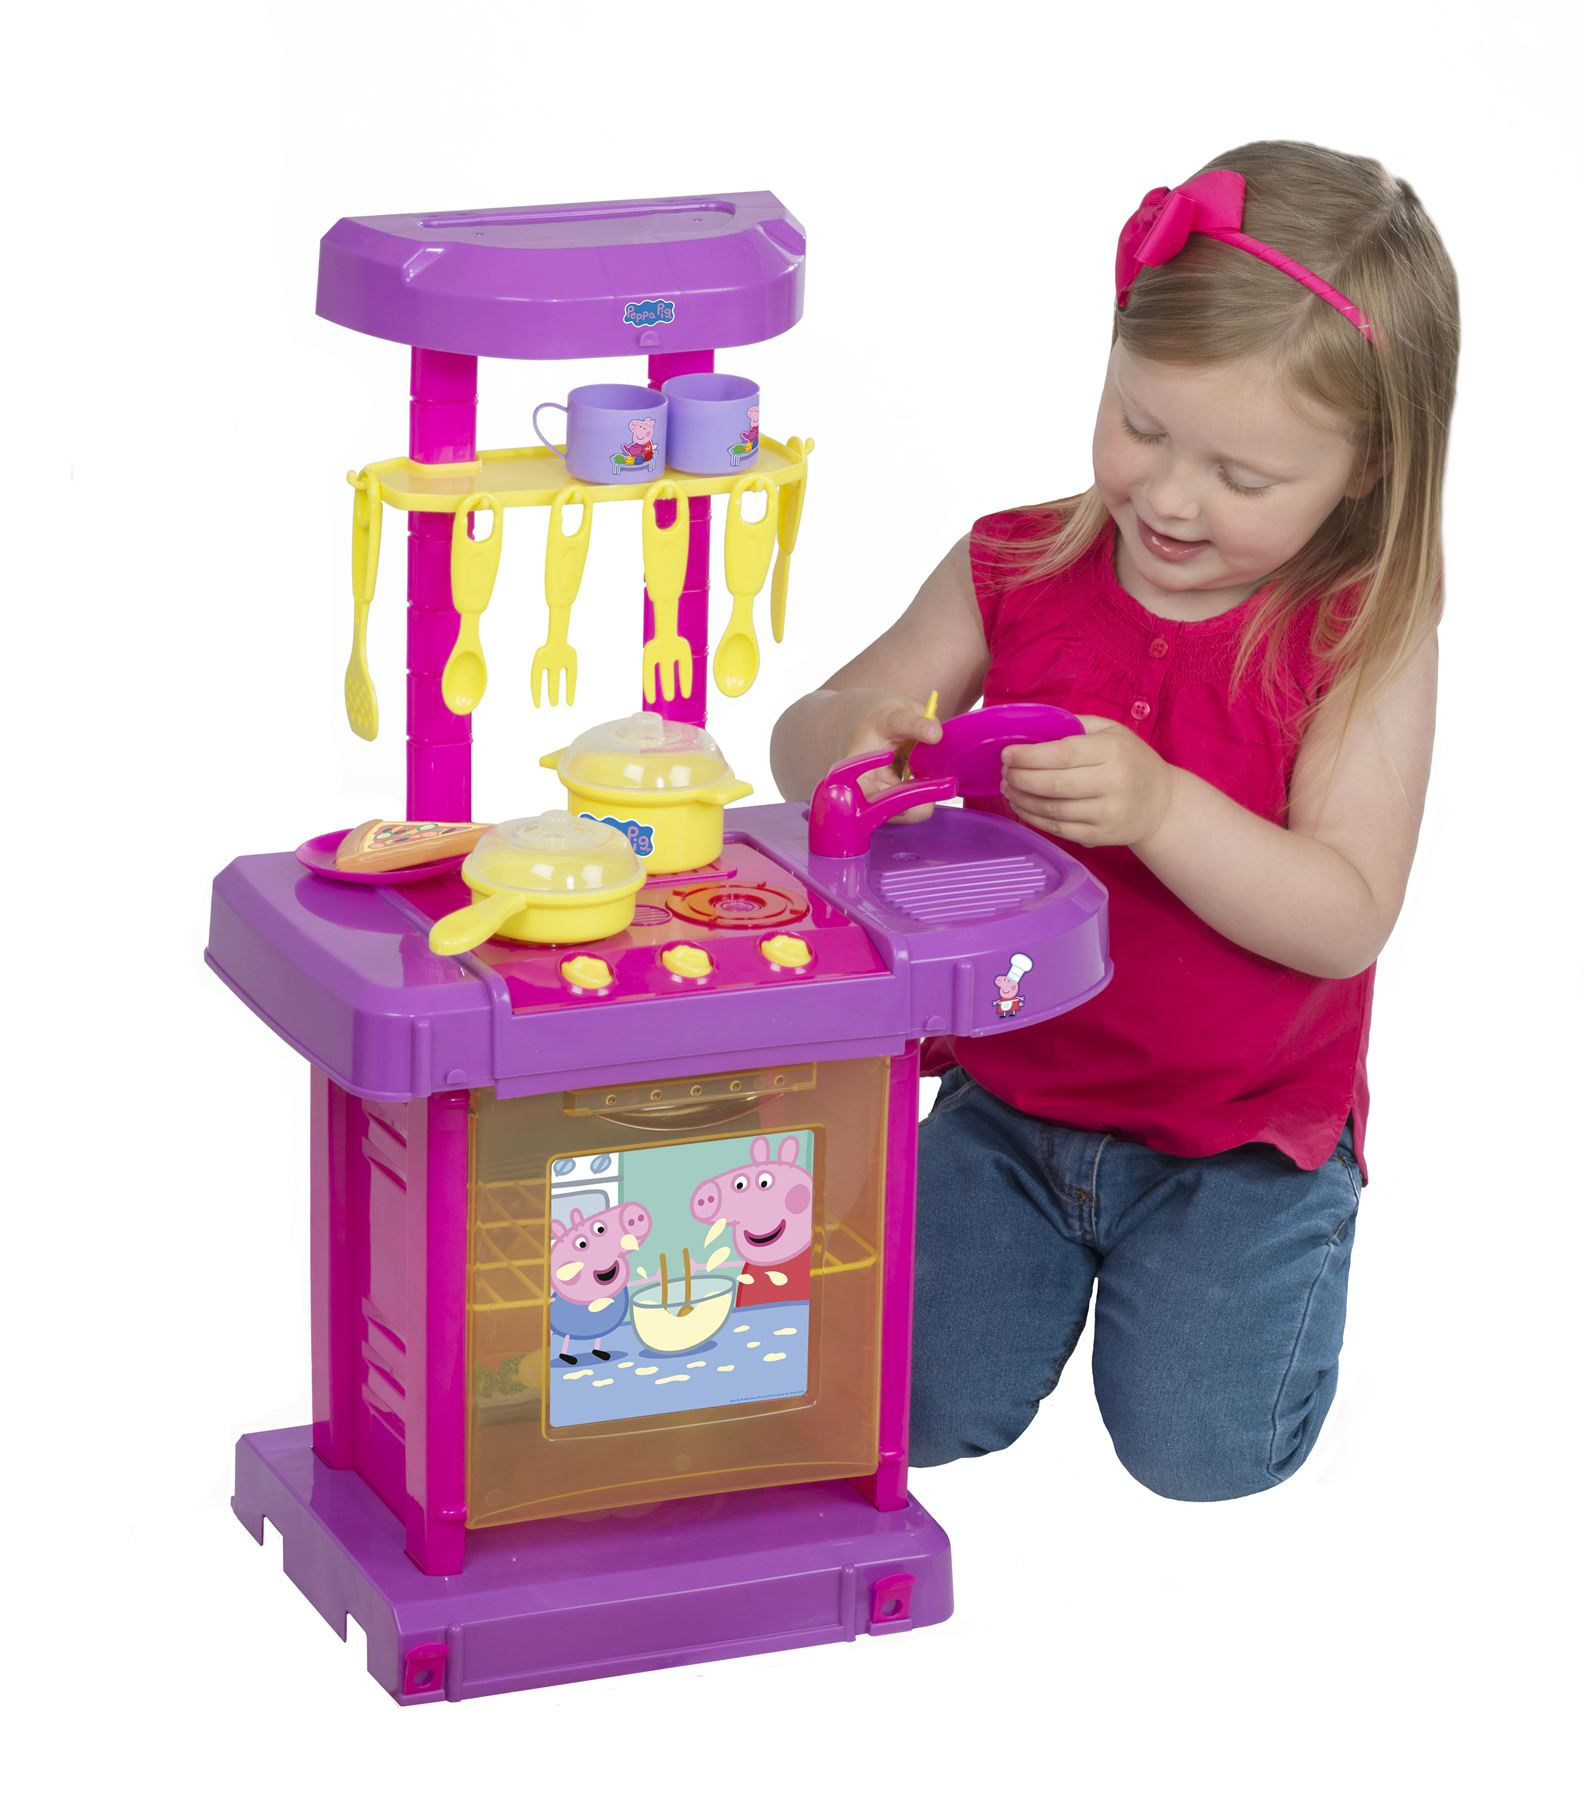 Play Toys For Girls : Peppa pig toy gift selection girls presents play